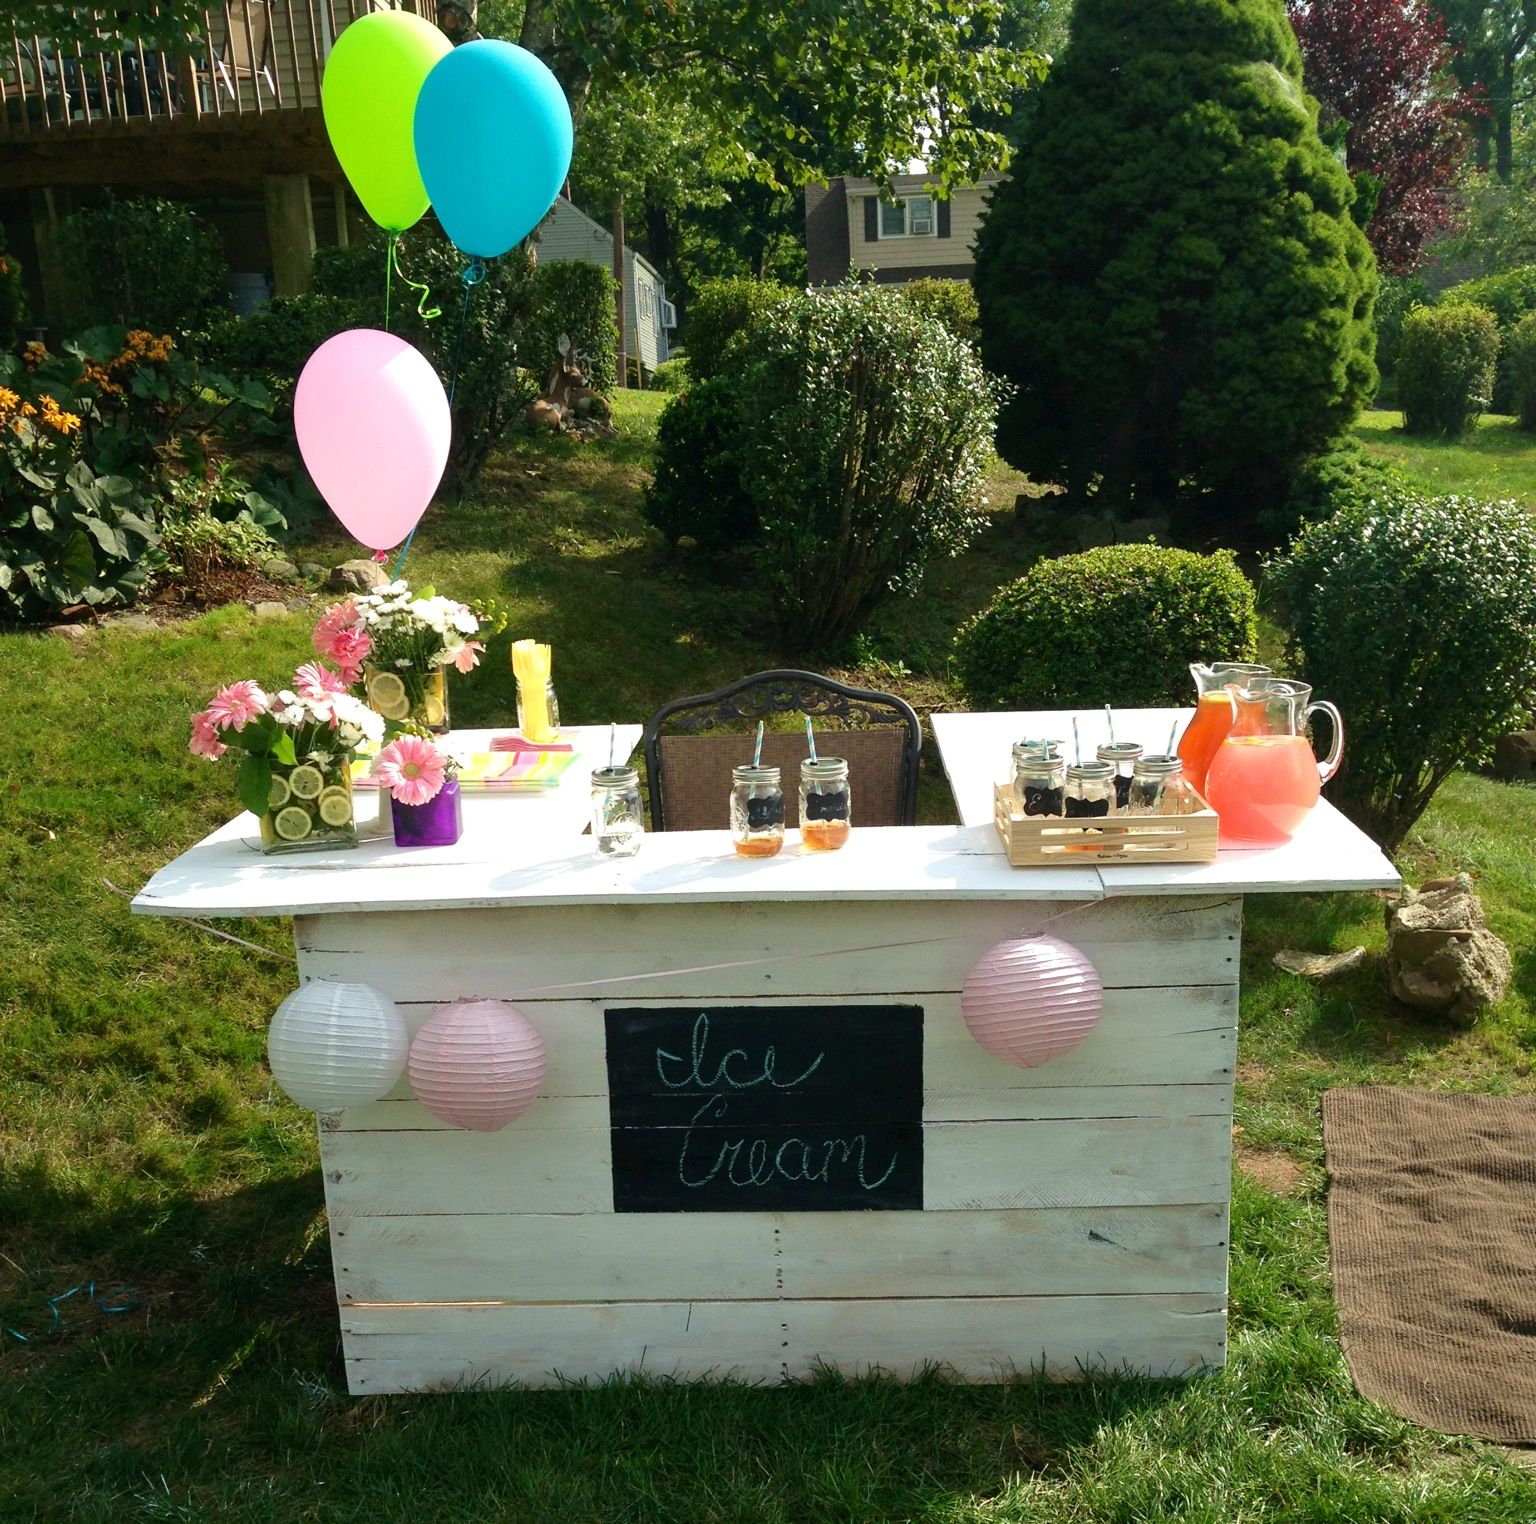 Birthday Party Ideas Augusta Ga: Ice Cream Sundae/Lemonade Stand Made From Pallets With A